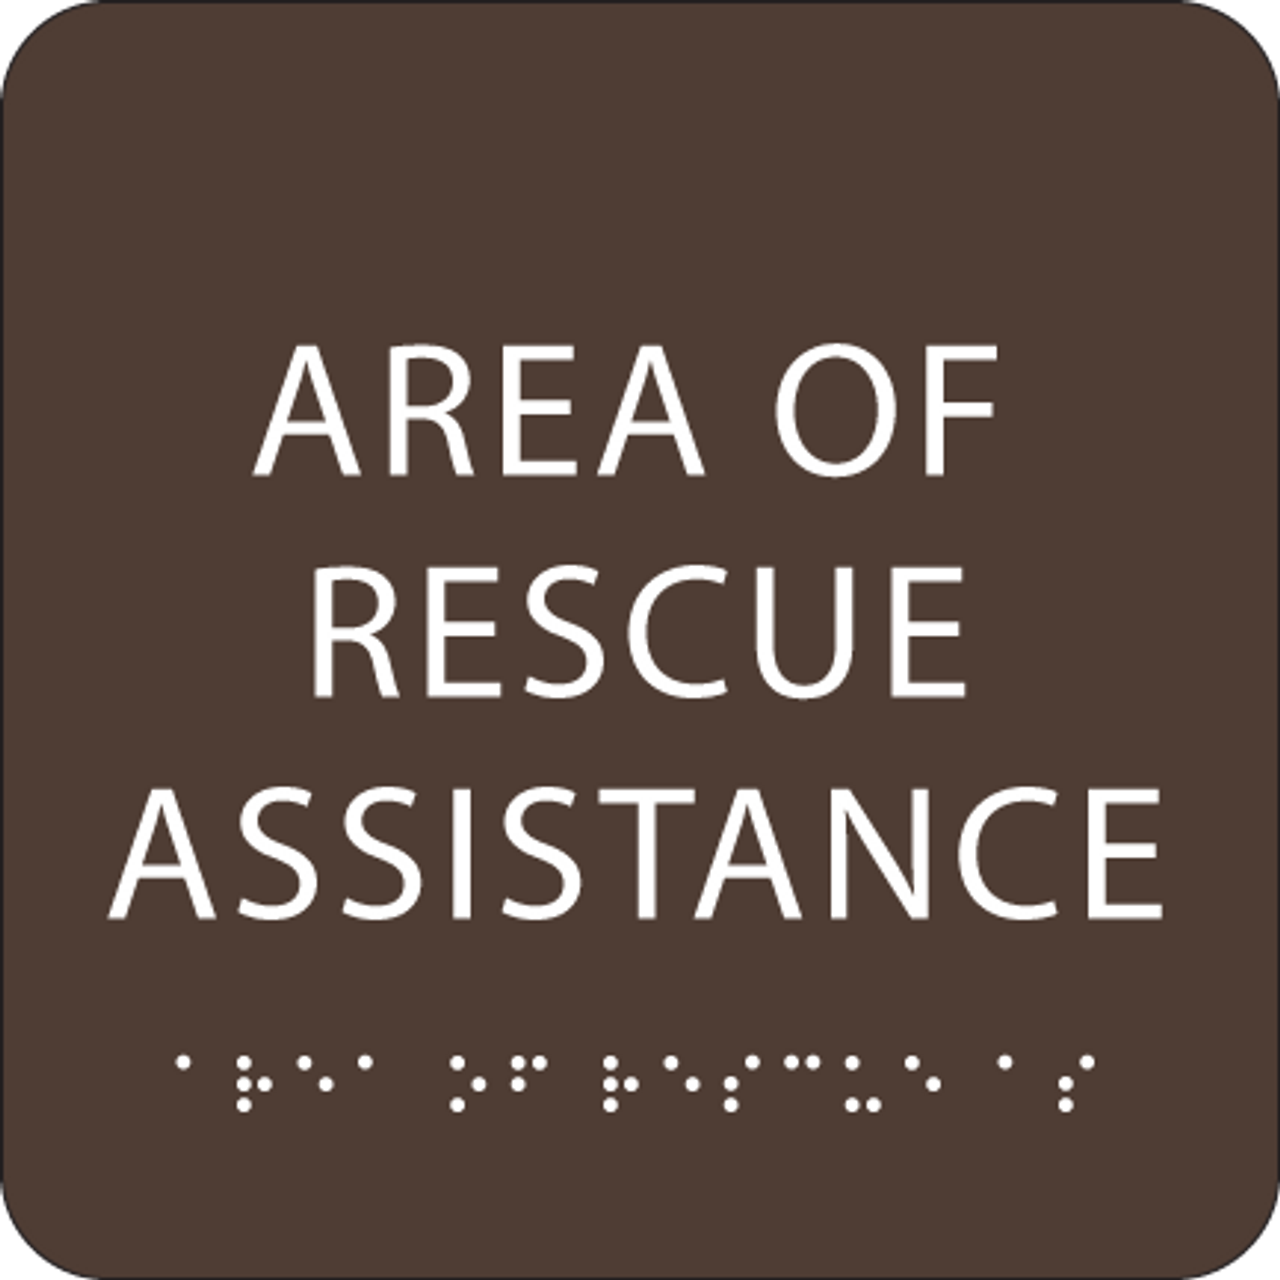 Dark Brown Area of Rescue Assistance ADA Sign